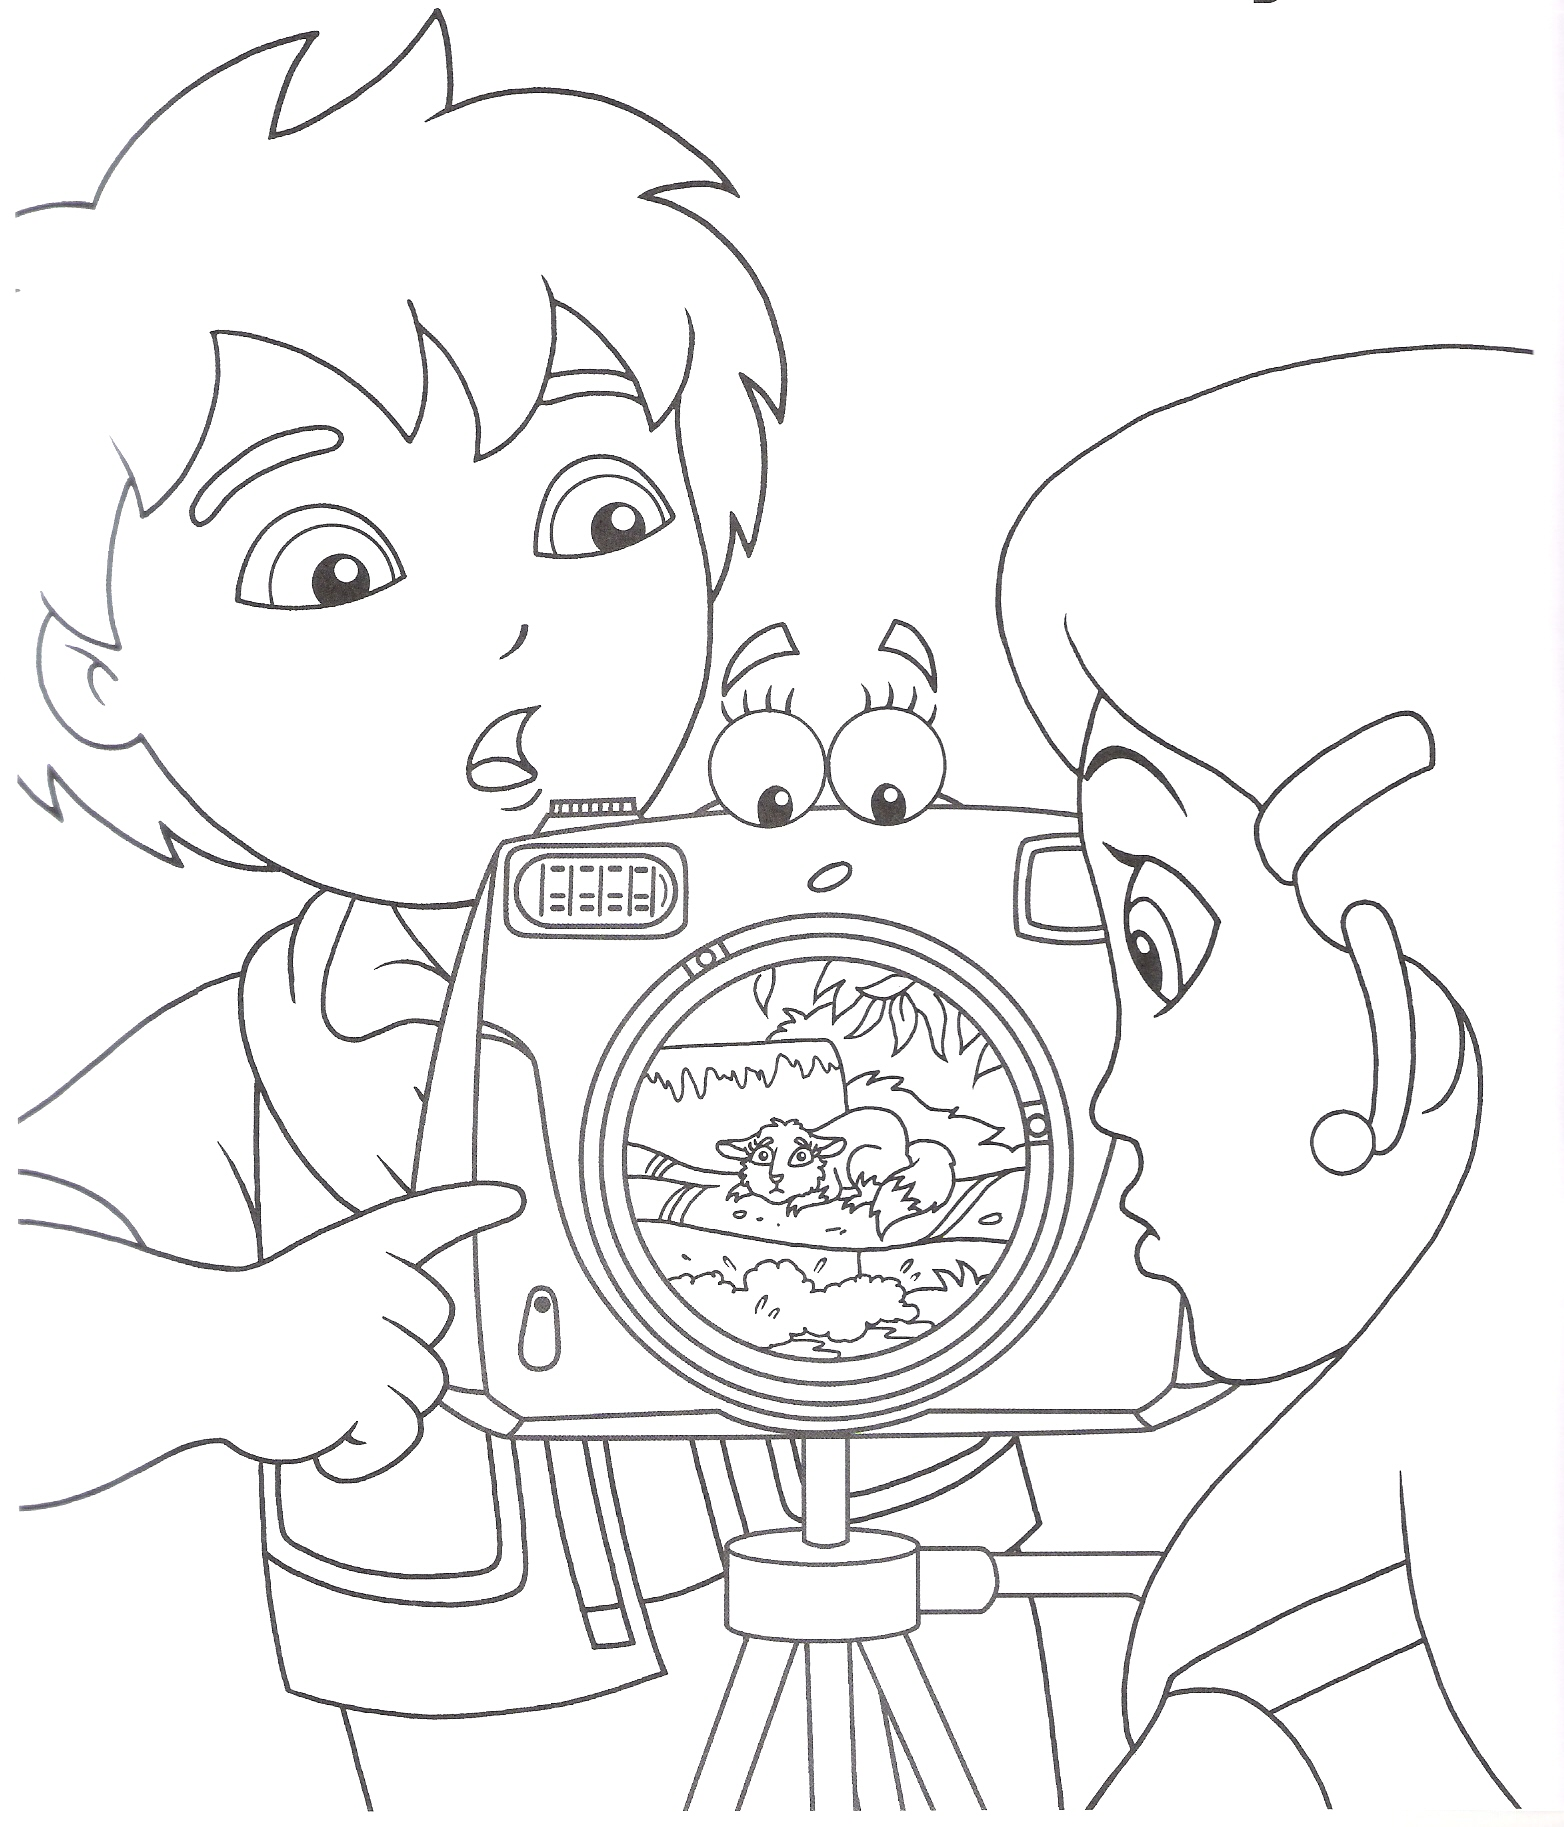 Diego Coloring Pages Coloring Pages To Print Diego Coloring Pages